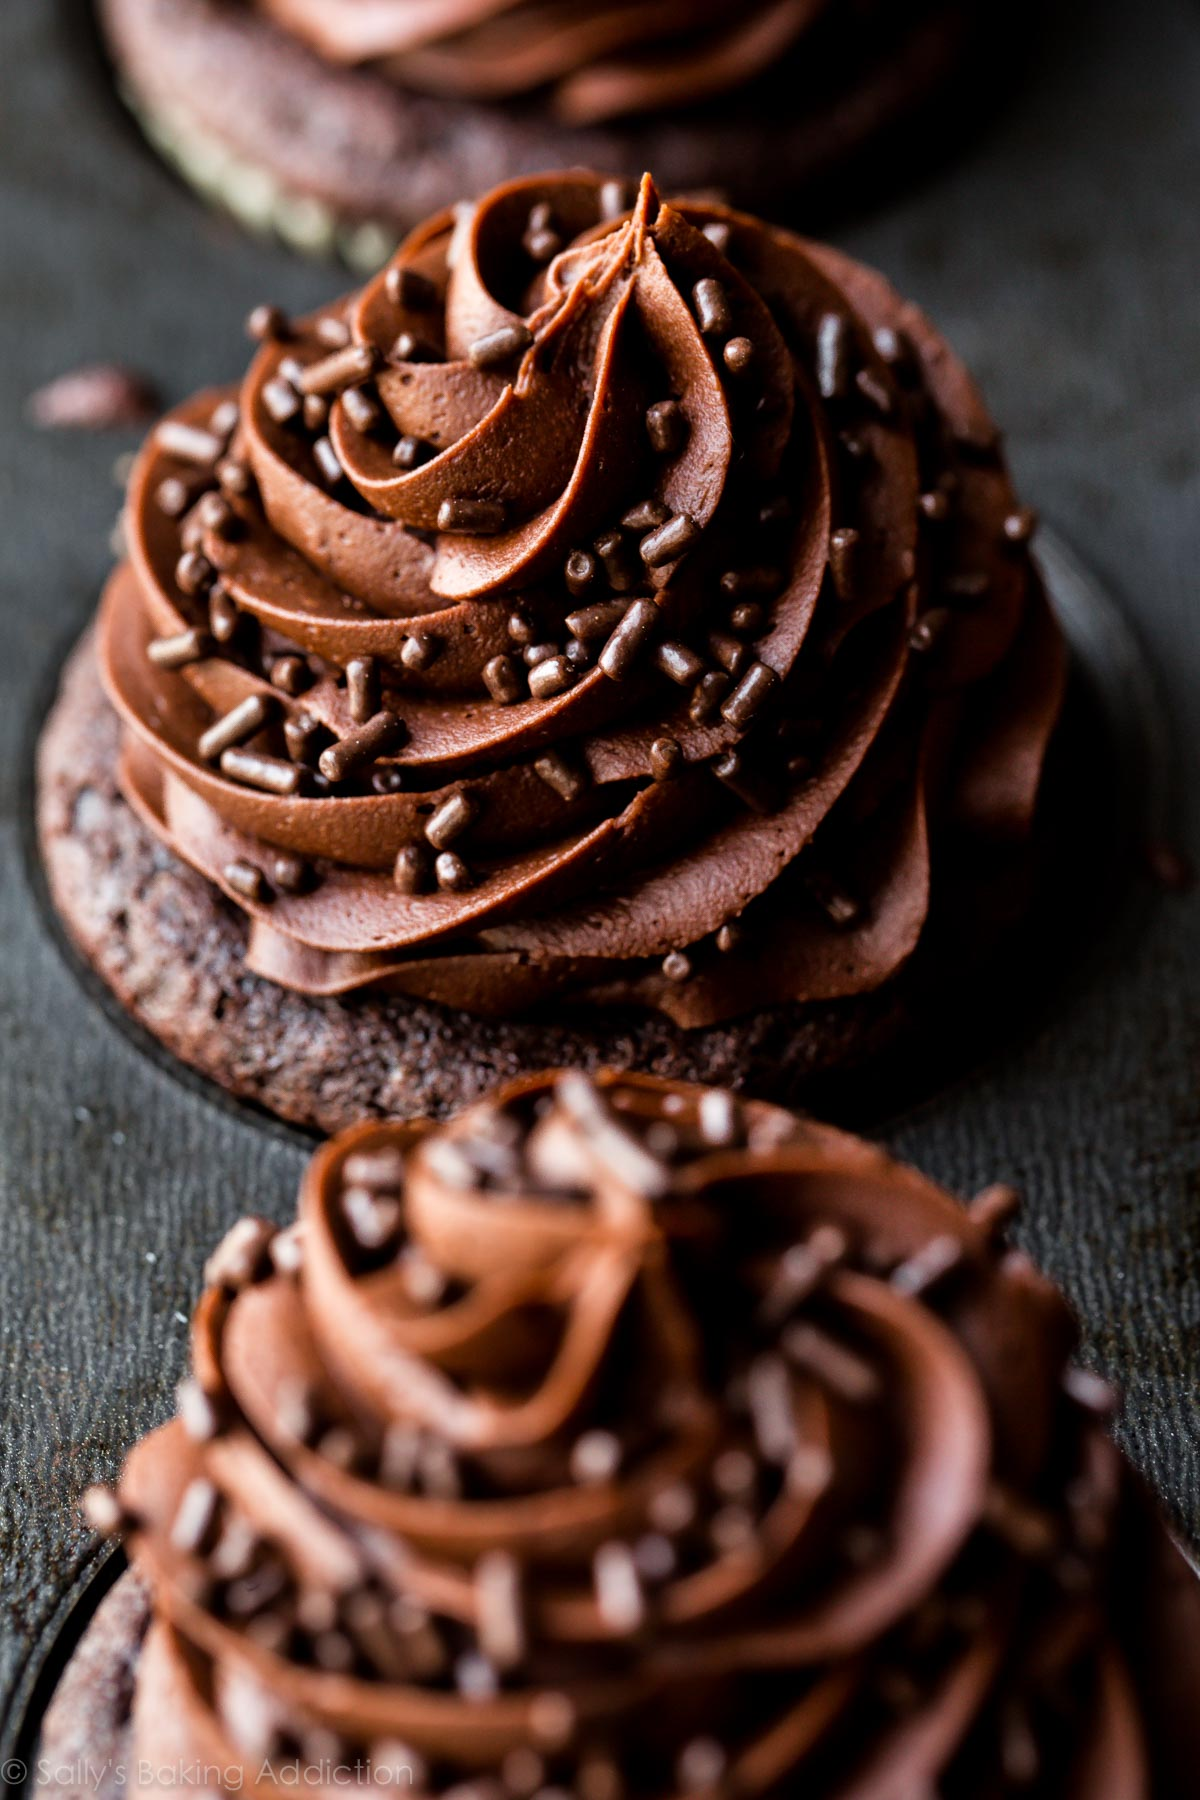 Super Moist Chocolate Cupcakes - Sallys Baking Addiction